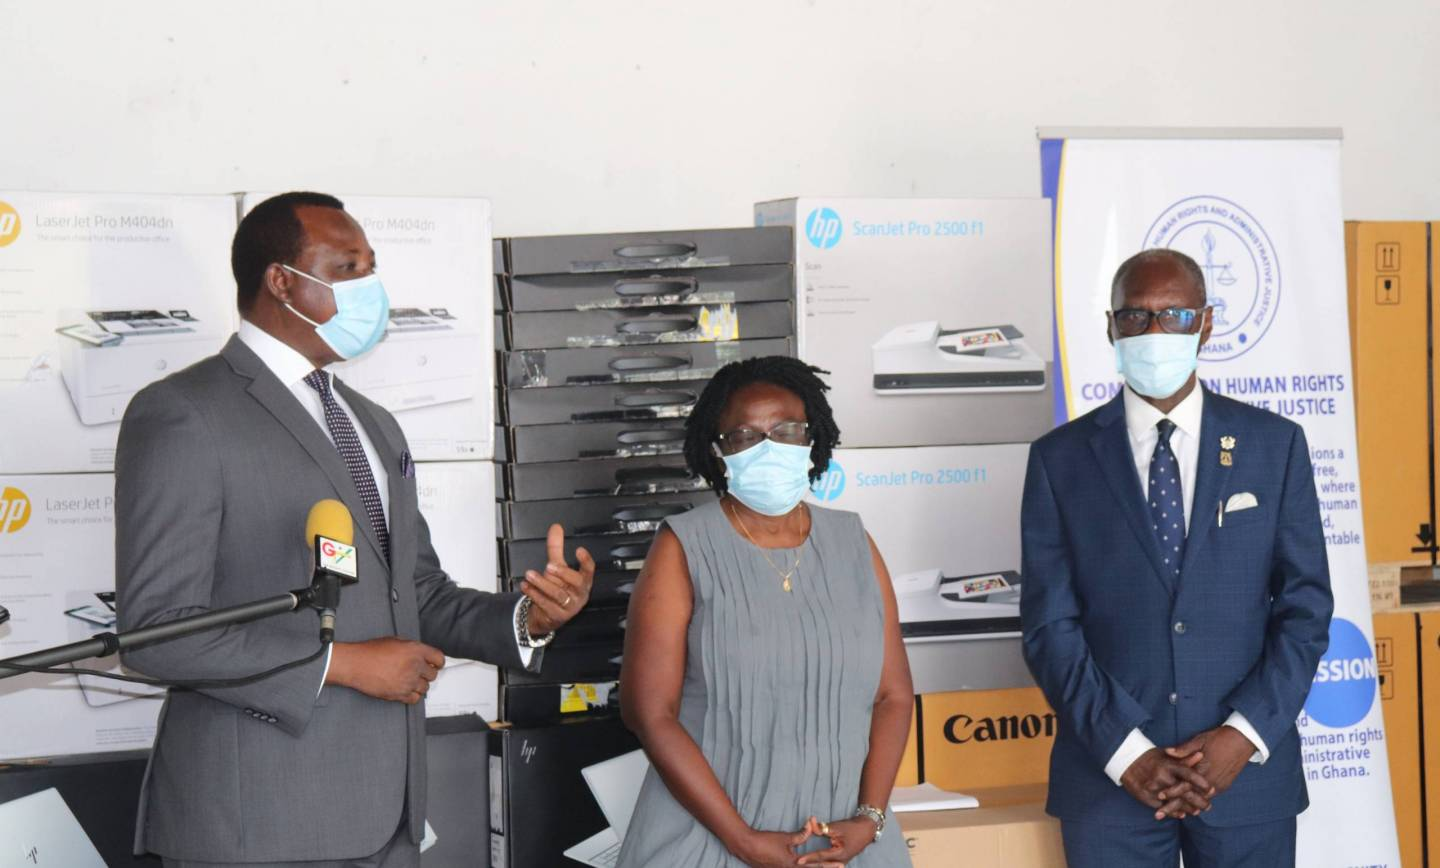 CHRAJ RECEIVES IT EQUIPMENT FROM THE GOVERNMENT